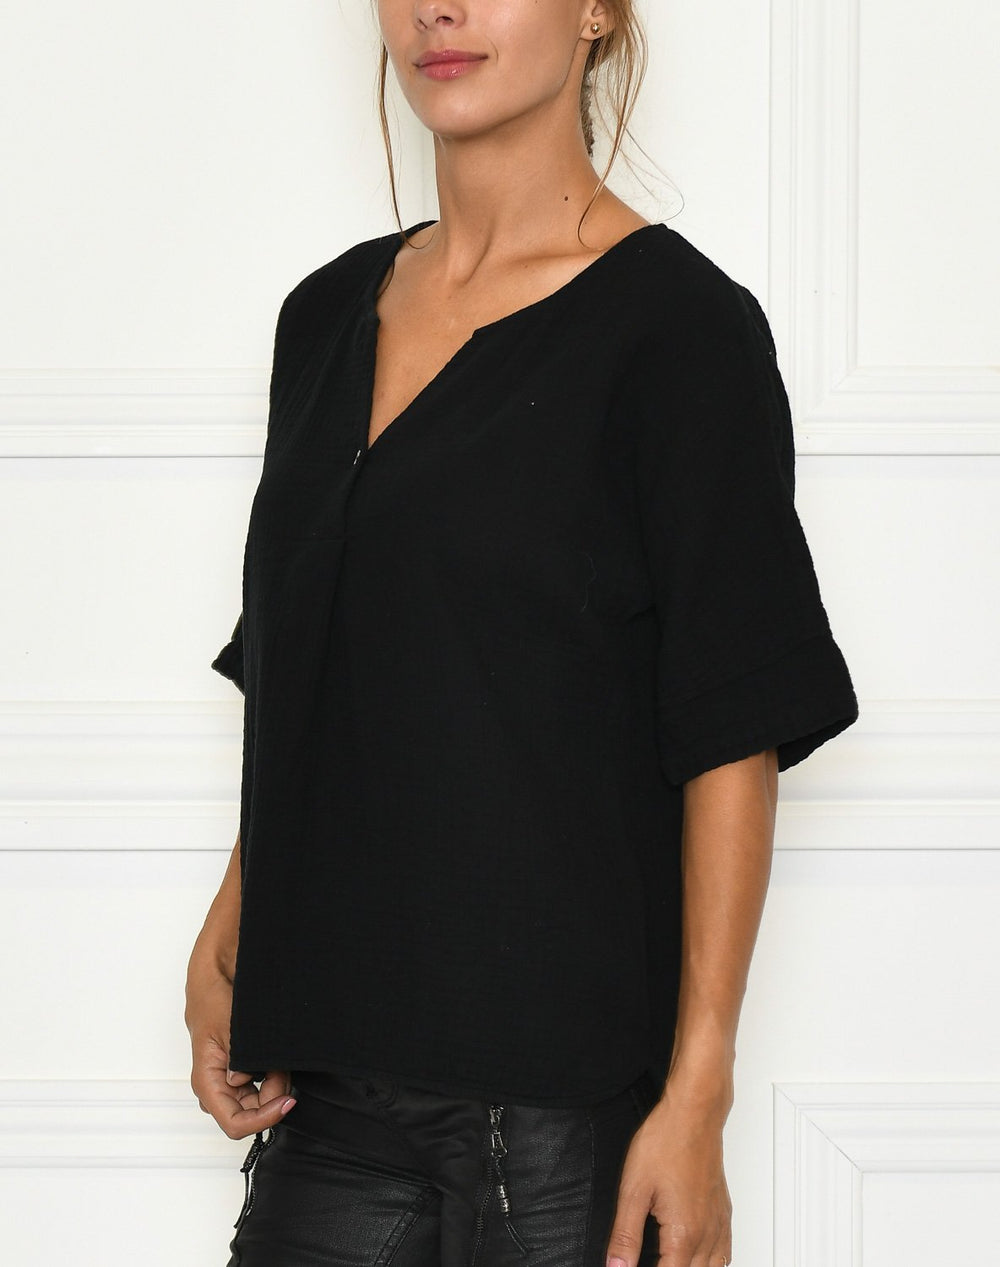 Luxzuz Helia blouse black - Online-Mode